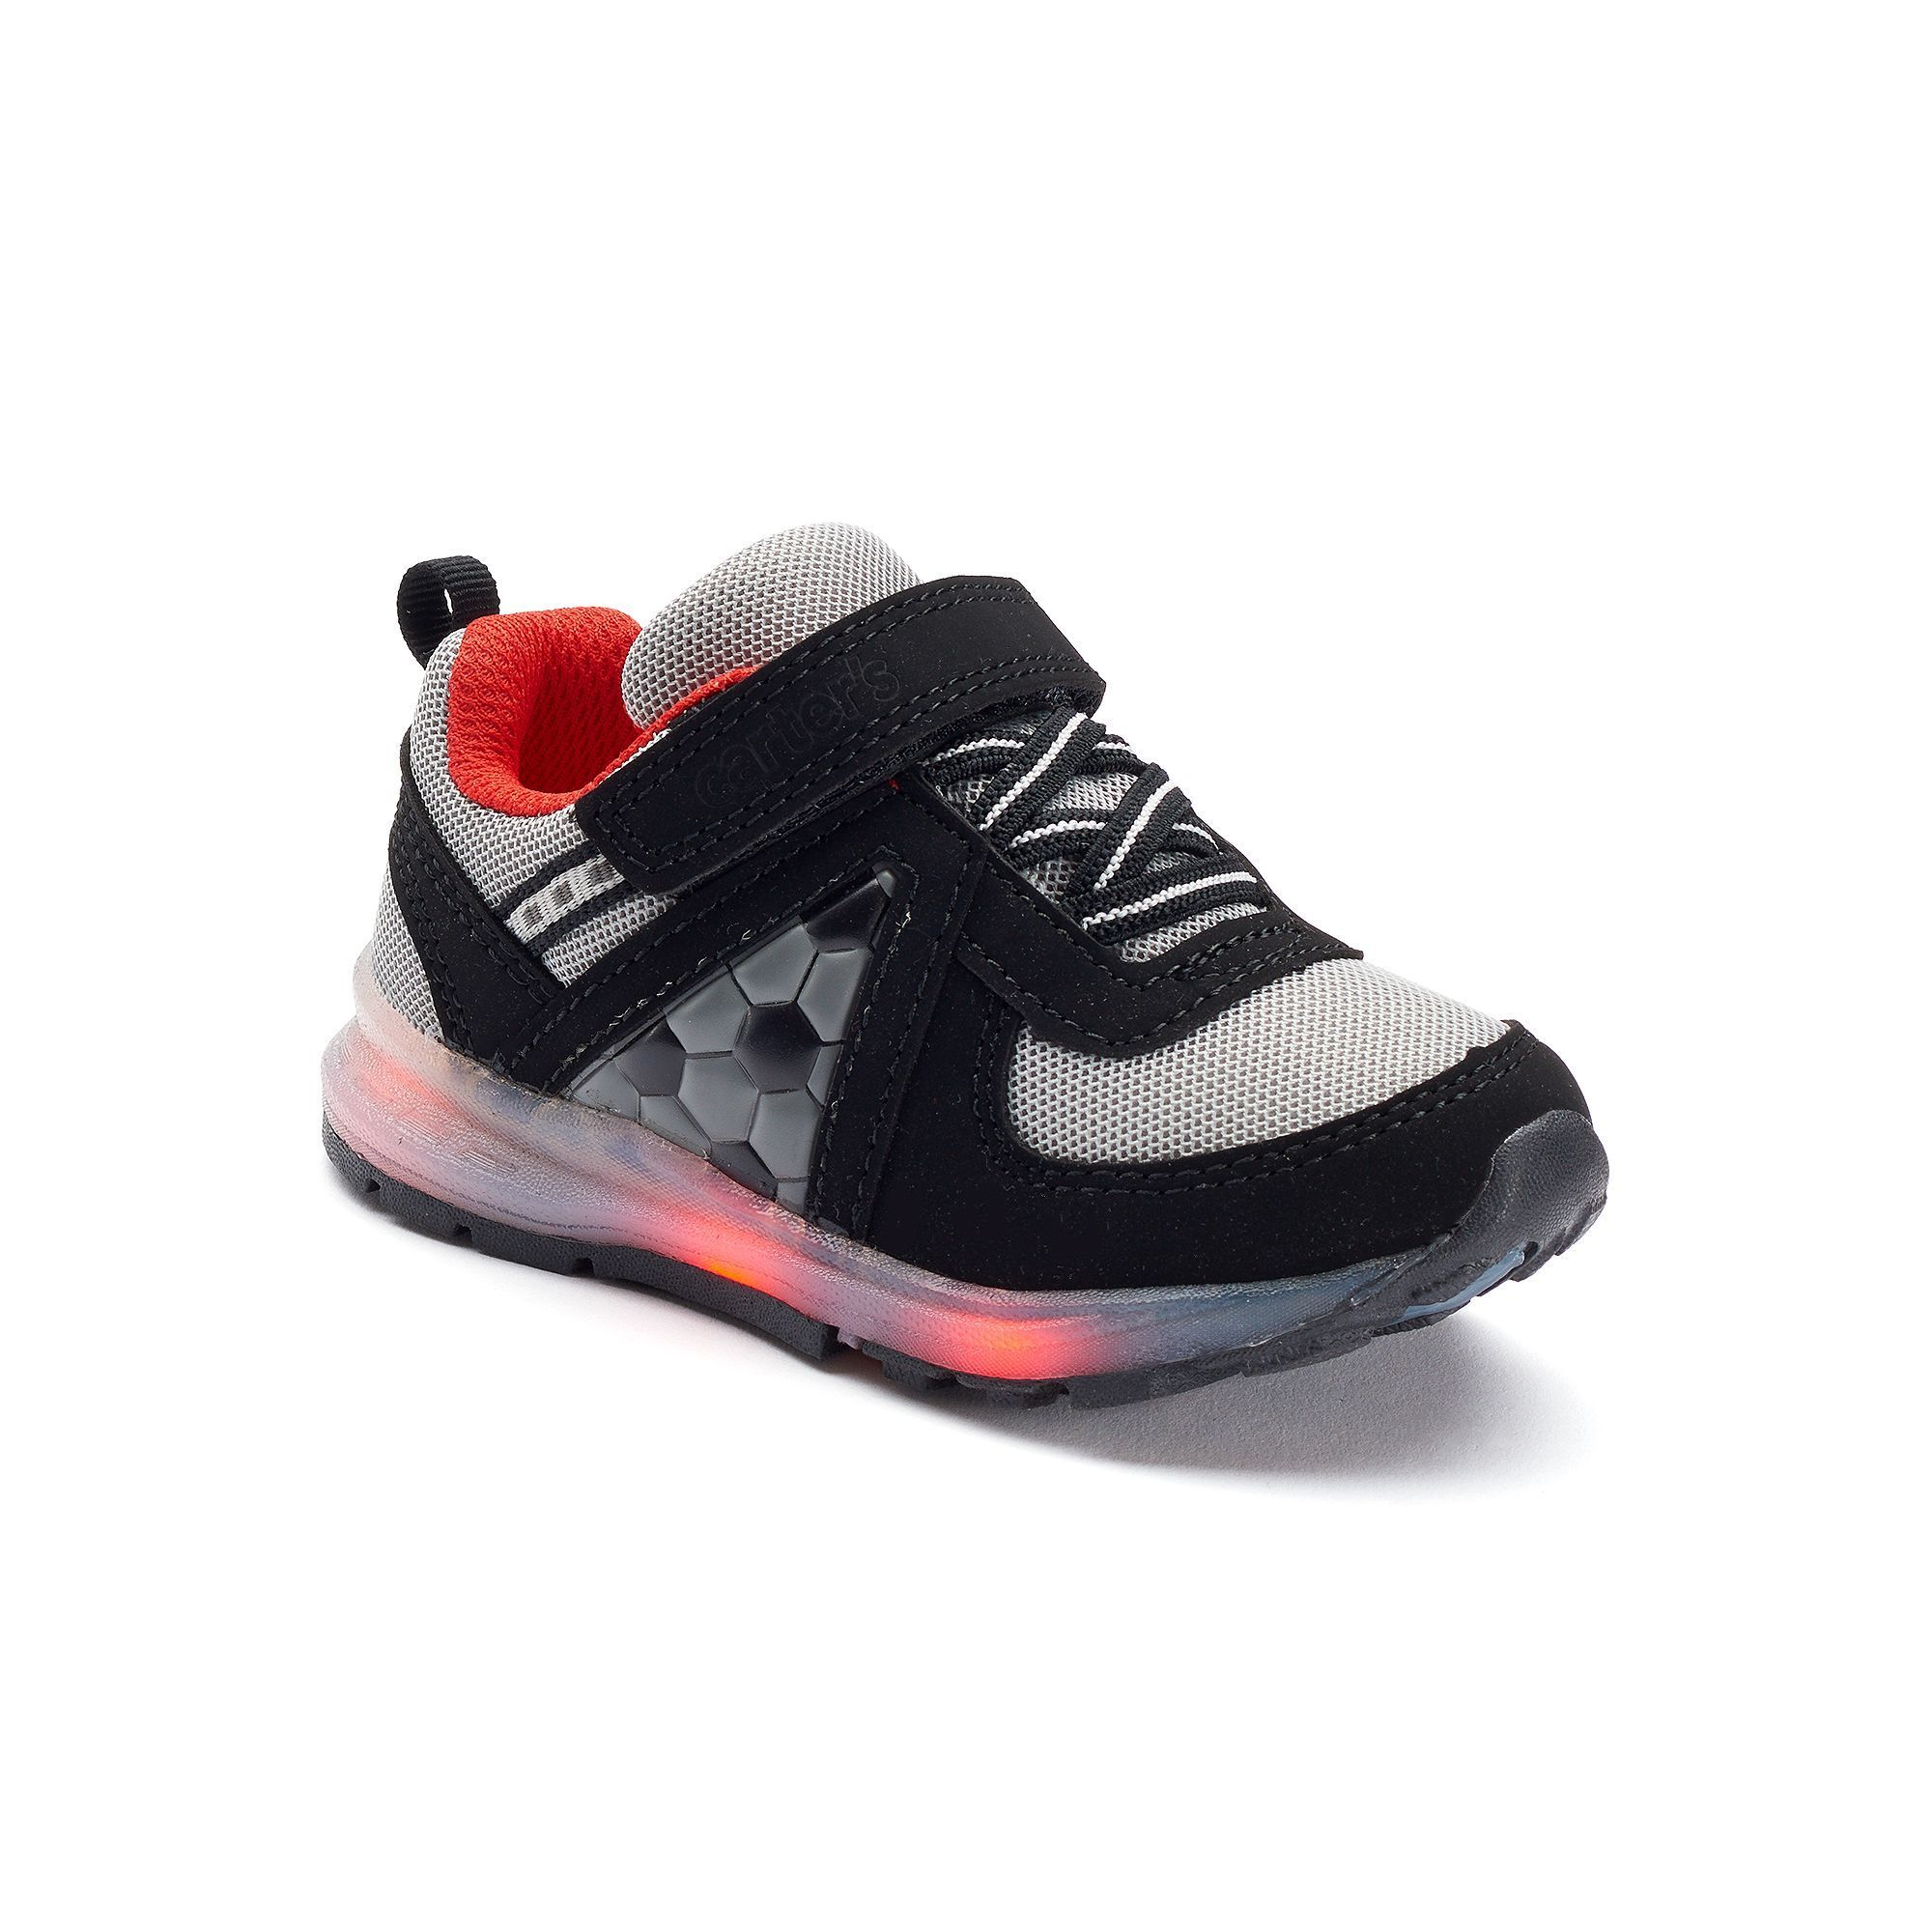 dhgate boys athletic wide toddler led shoes girls children light com up best running from baby kids product sneakers tennis